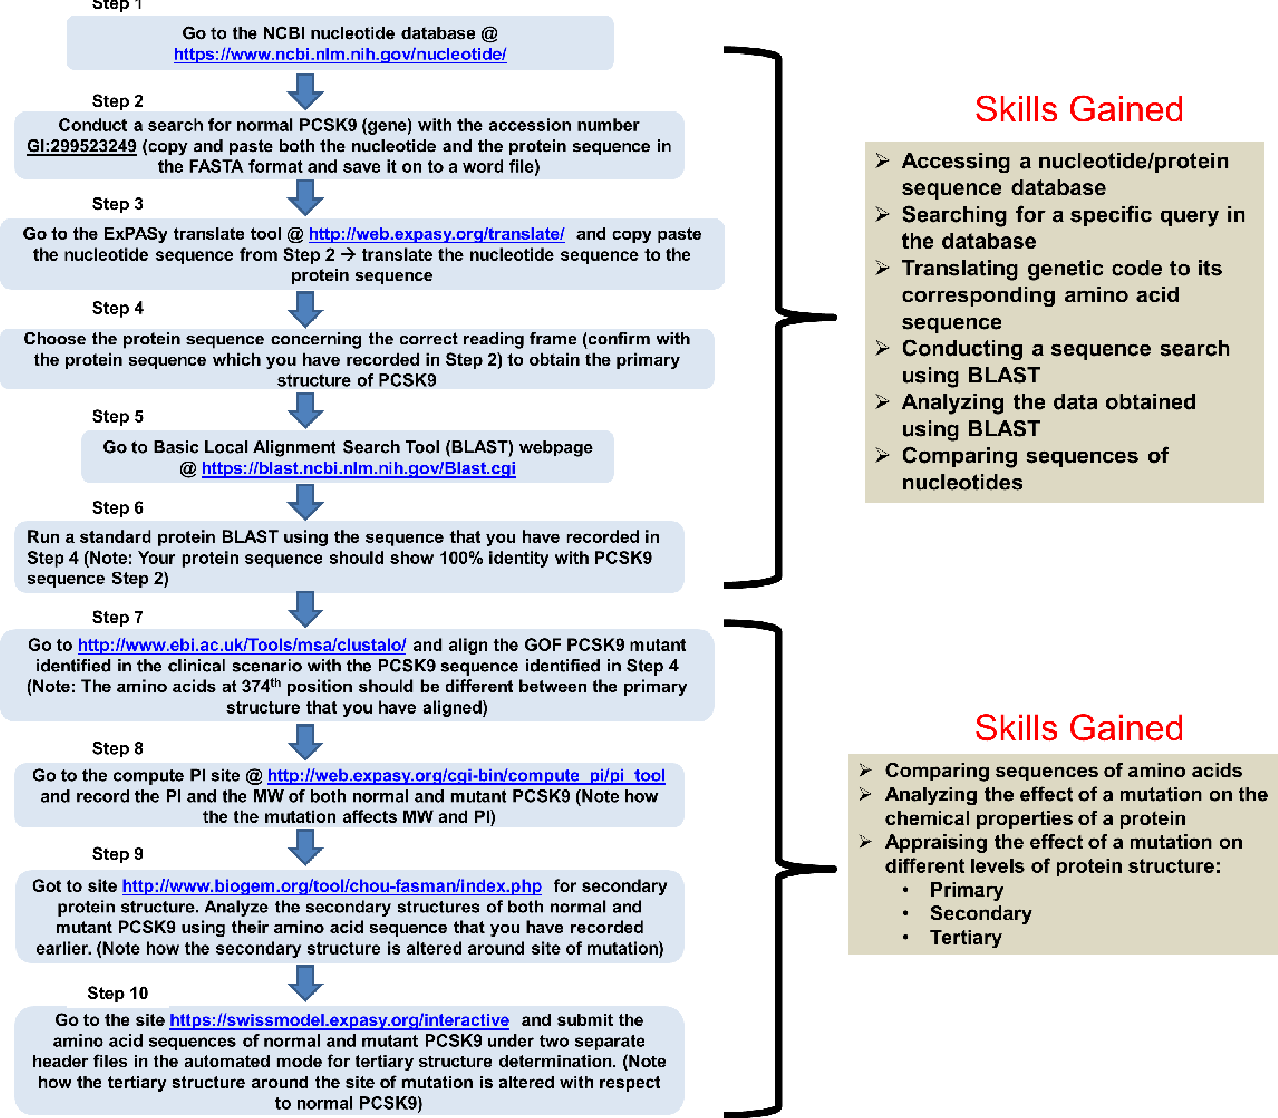 Figure 2 from Blending Gagne's Instructional Model with